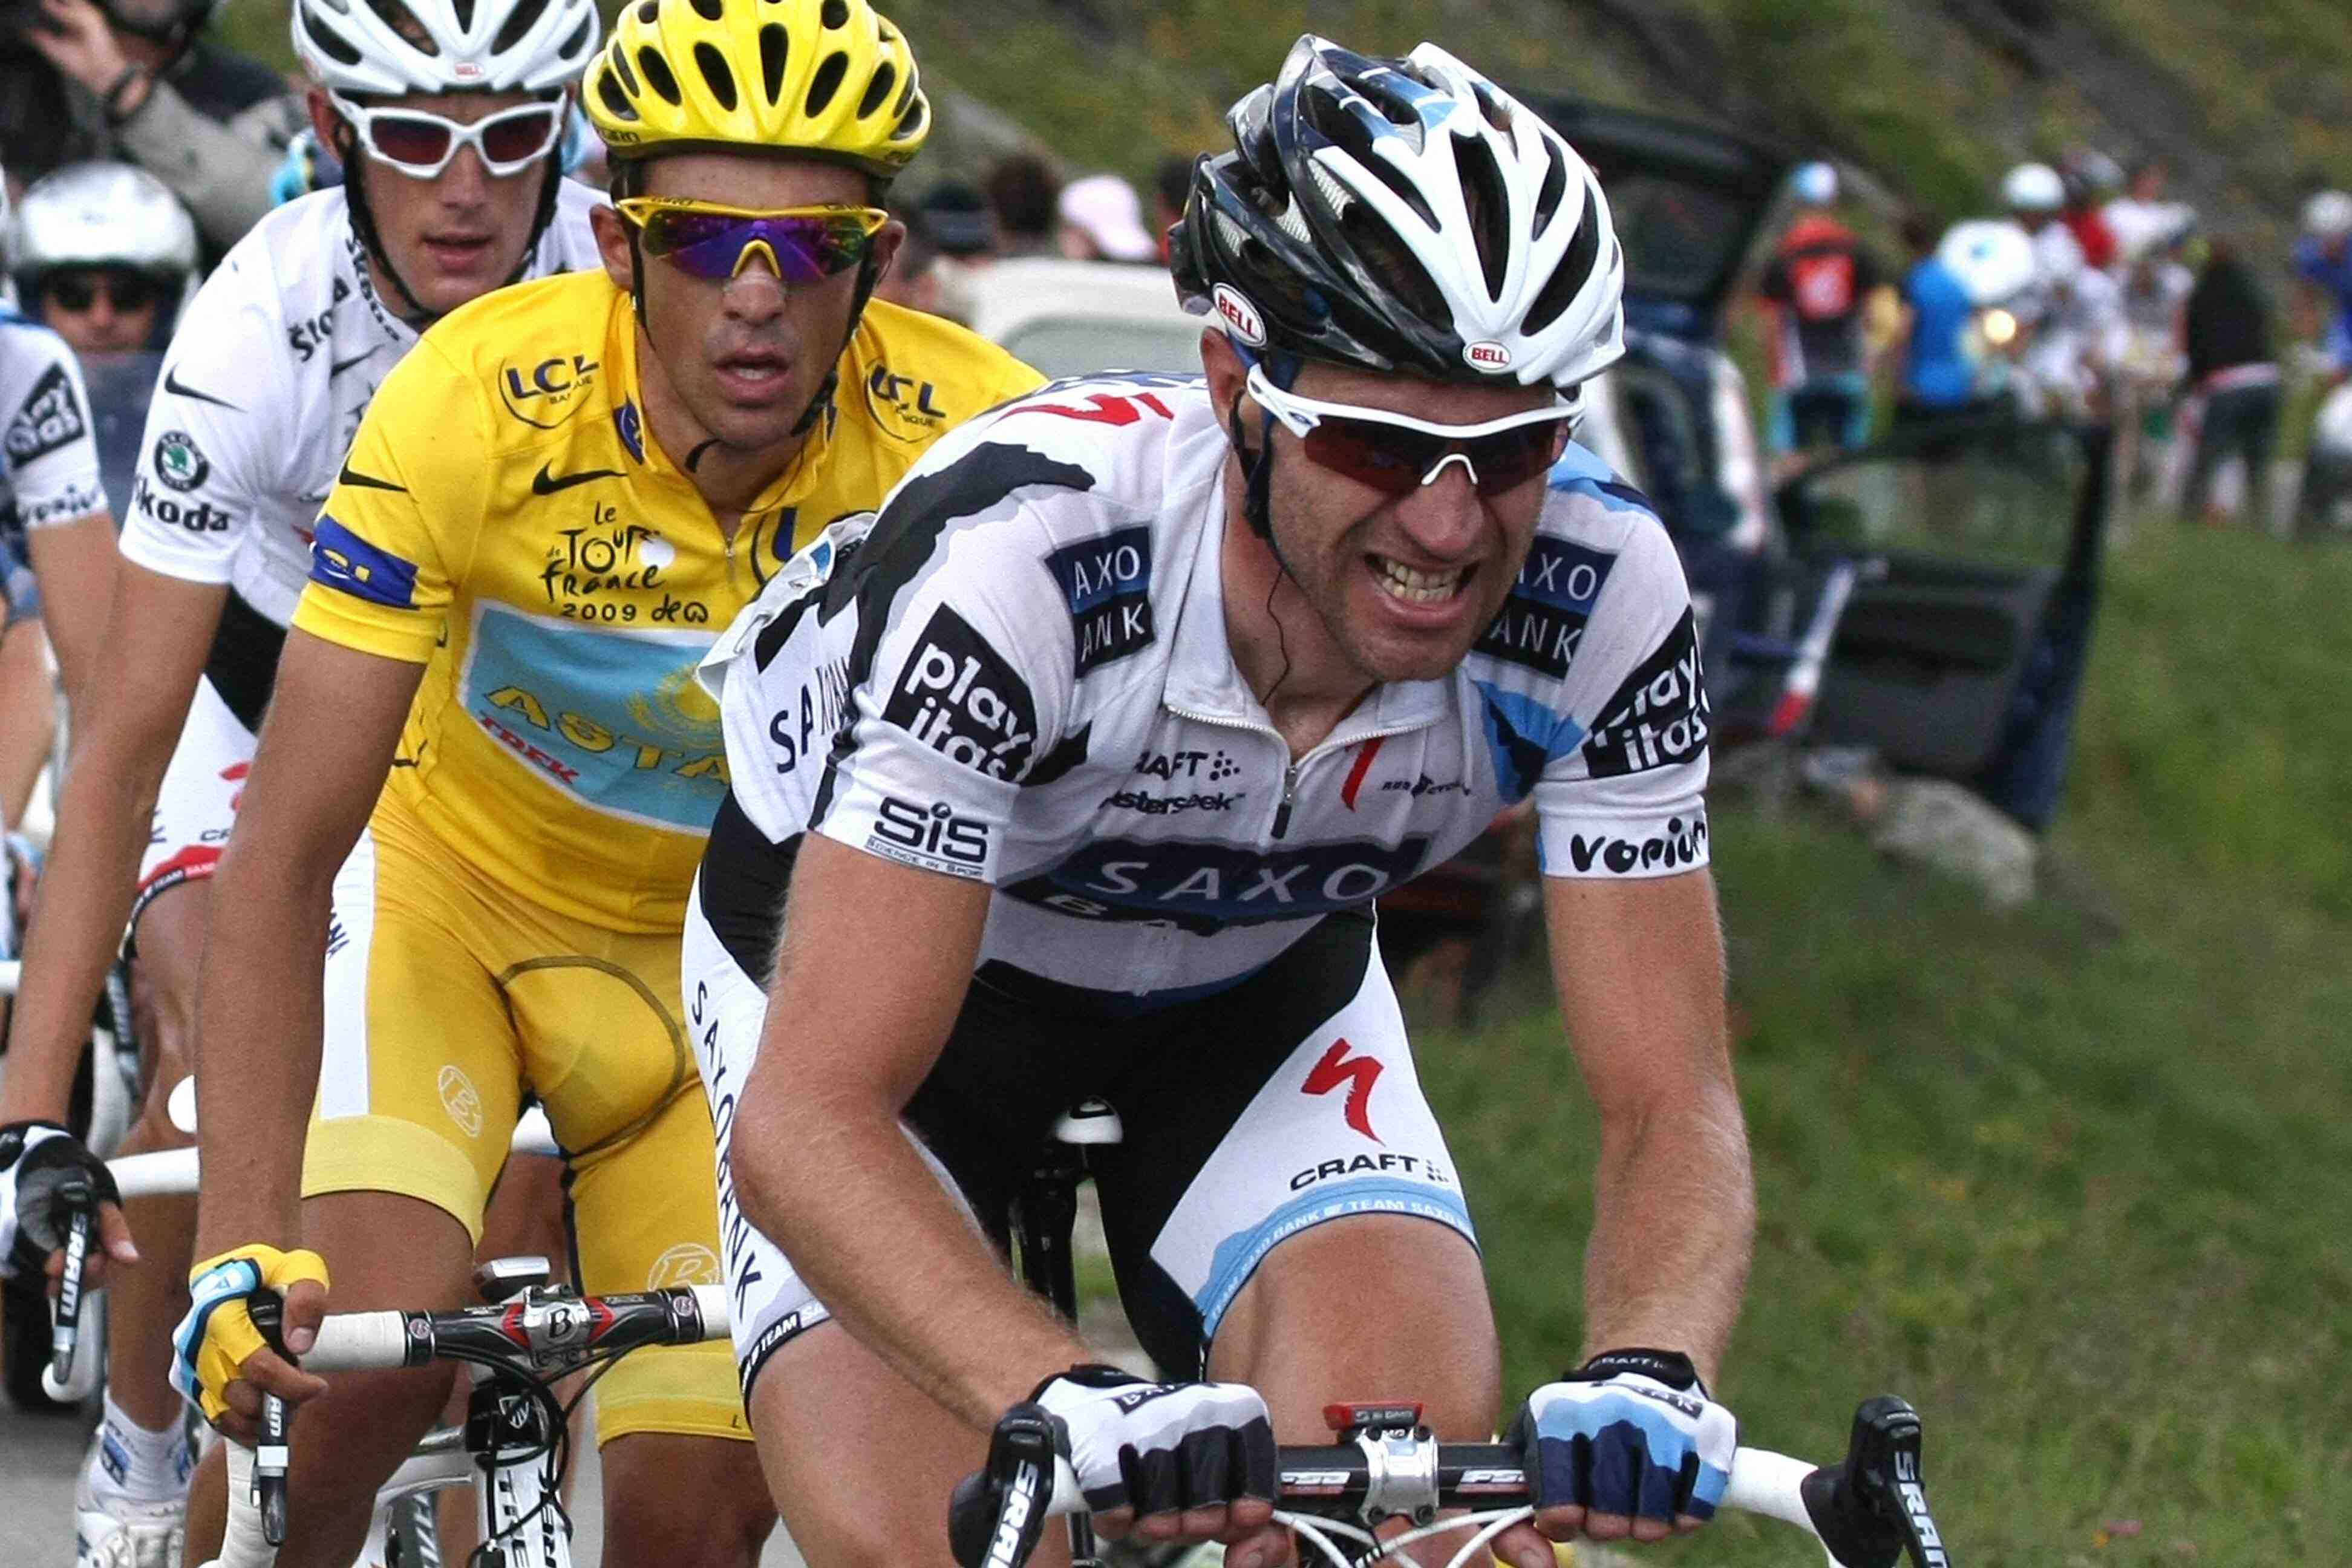 Germany's Jens Voigt leads Tour leader Alberto Contador and his Saxo Bank team-mate Andy Schleck during stage 16 of the 2009 Tour.